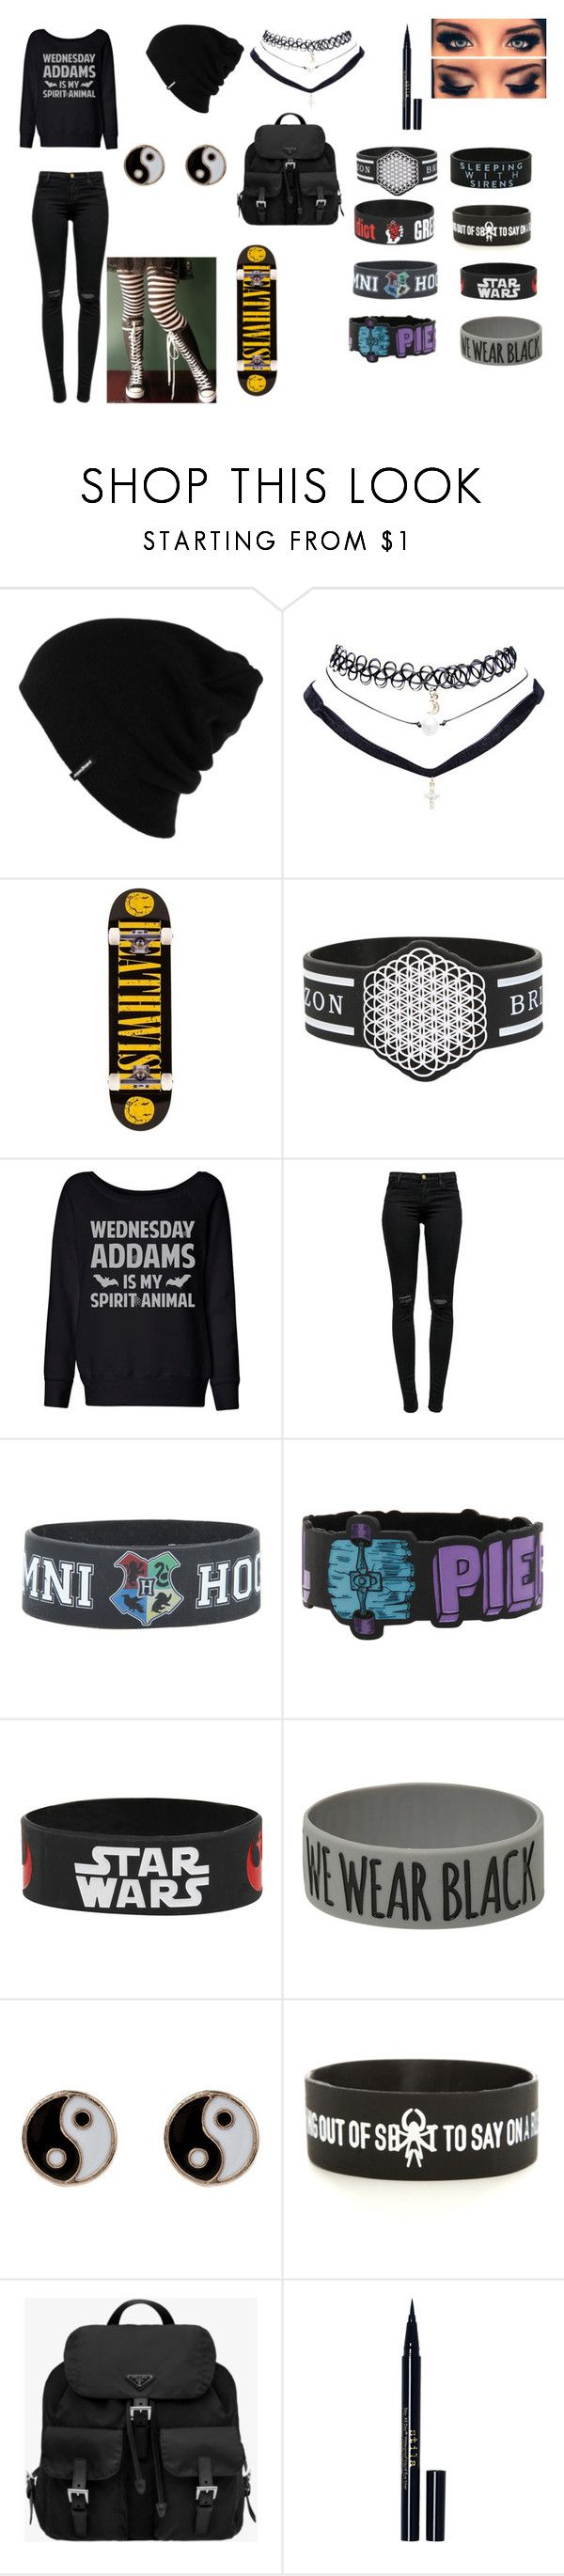 """Wednesday Addams is My Spirit Animal"" by basic-penguin-girl on Polyvore featuring Patagonia, Hot Topic, Converse, Wet Seal, Deathwish, J Brand, Accessorize, Prada and Stila"